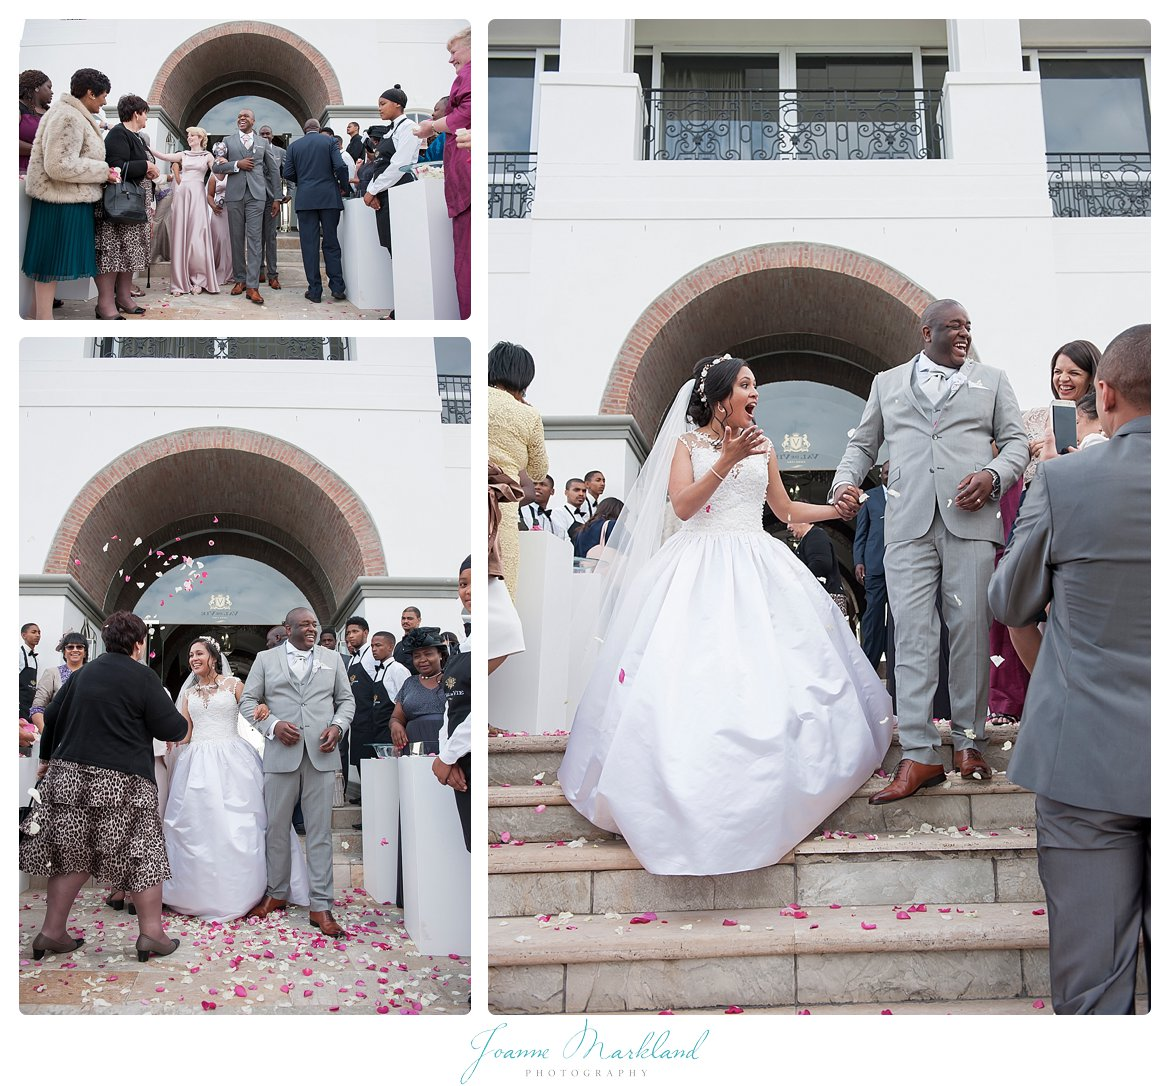 Val_de_vie_wedding_joanne_markland_photography_paarl-031